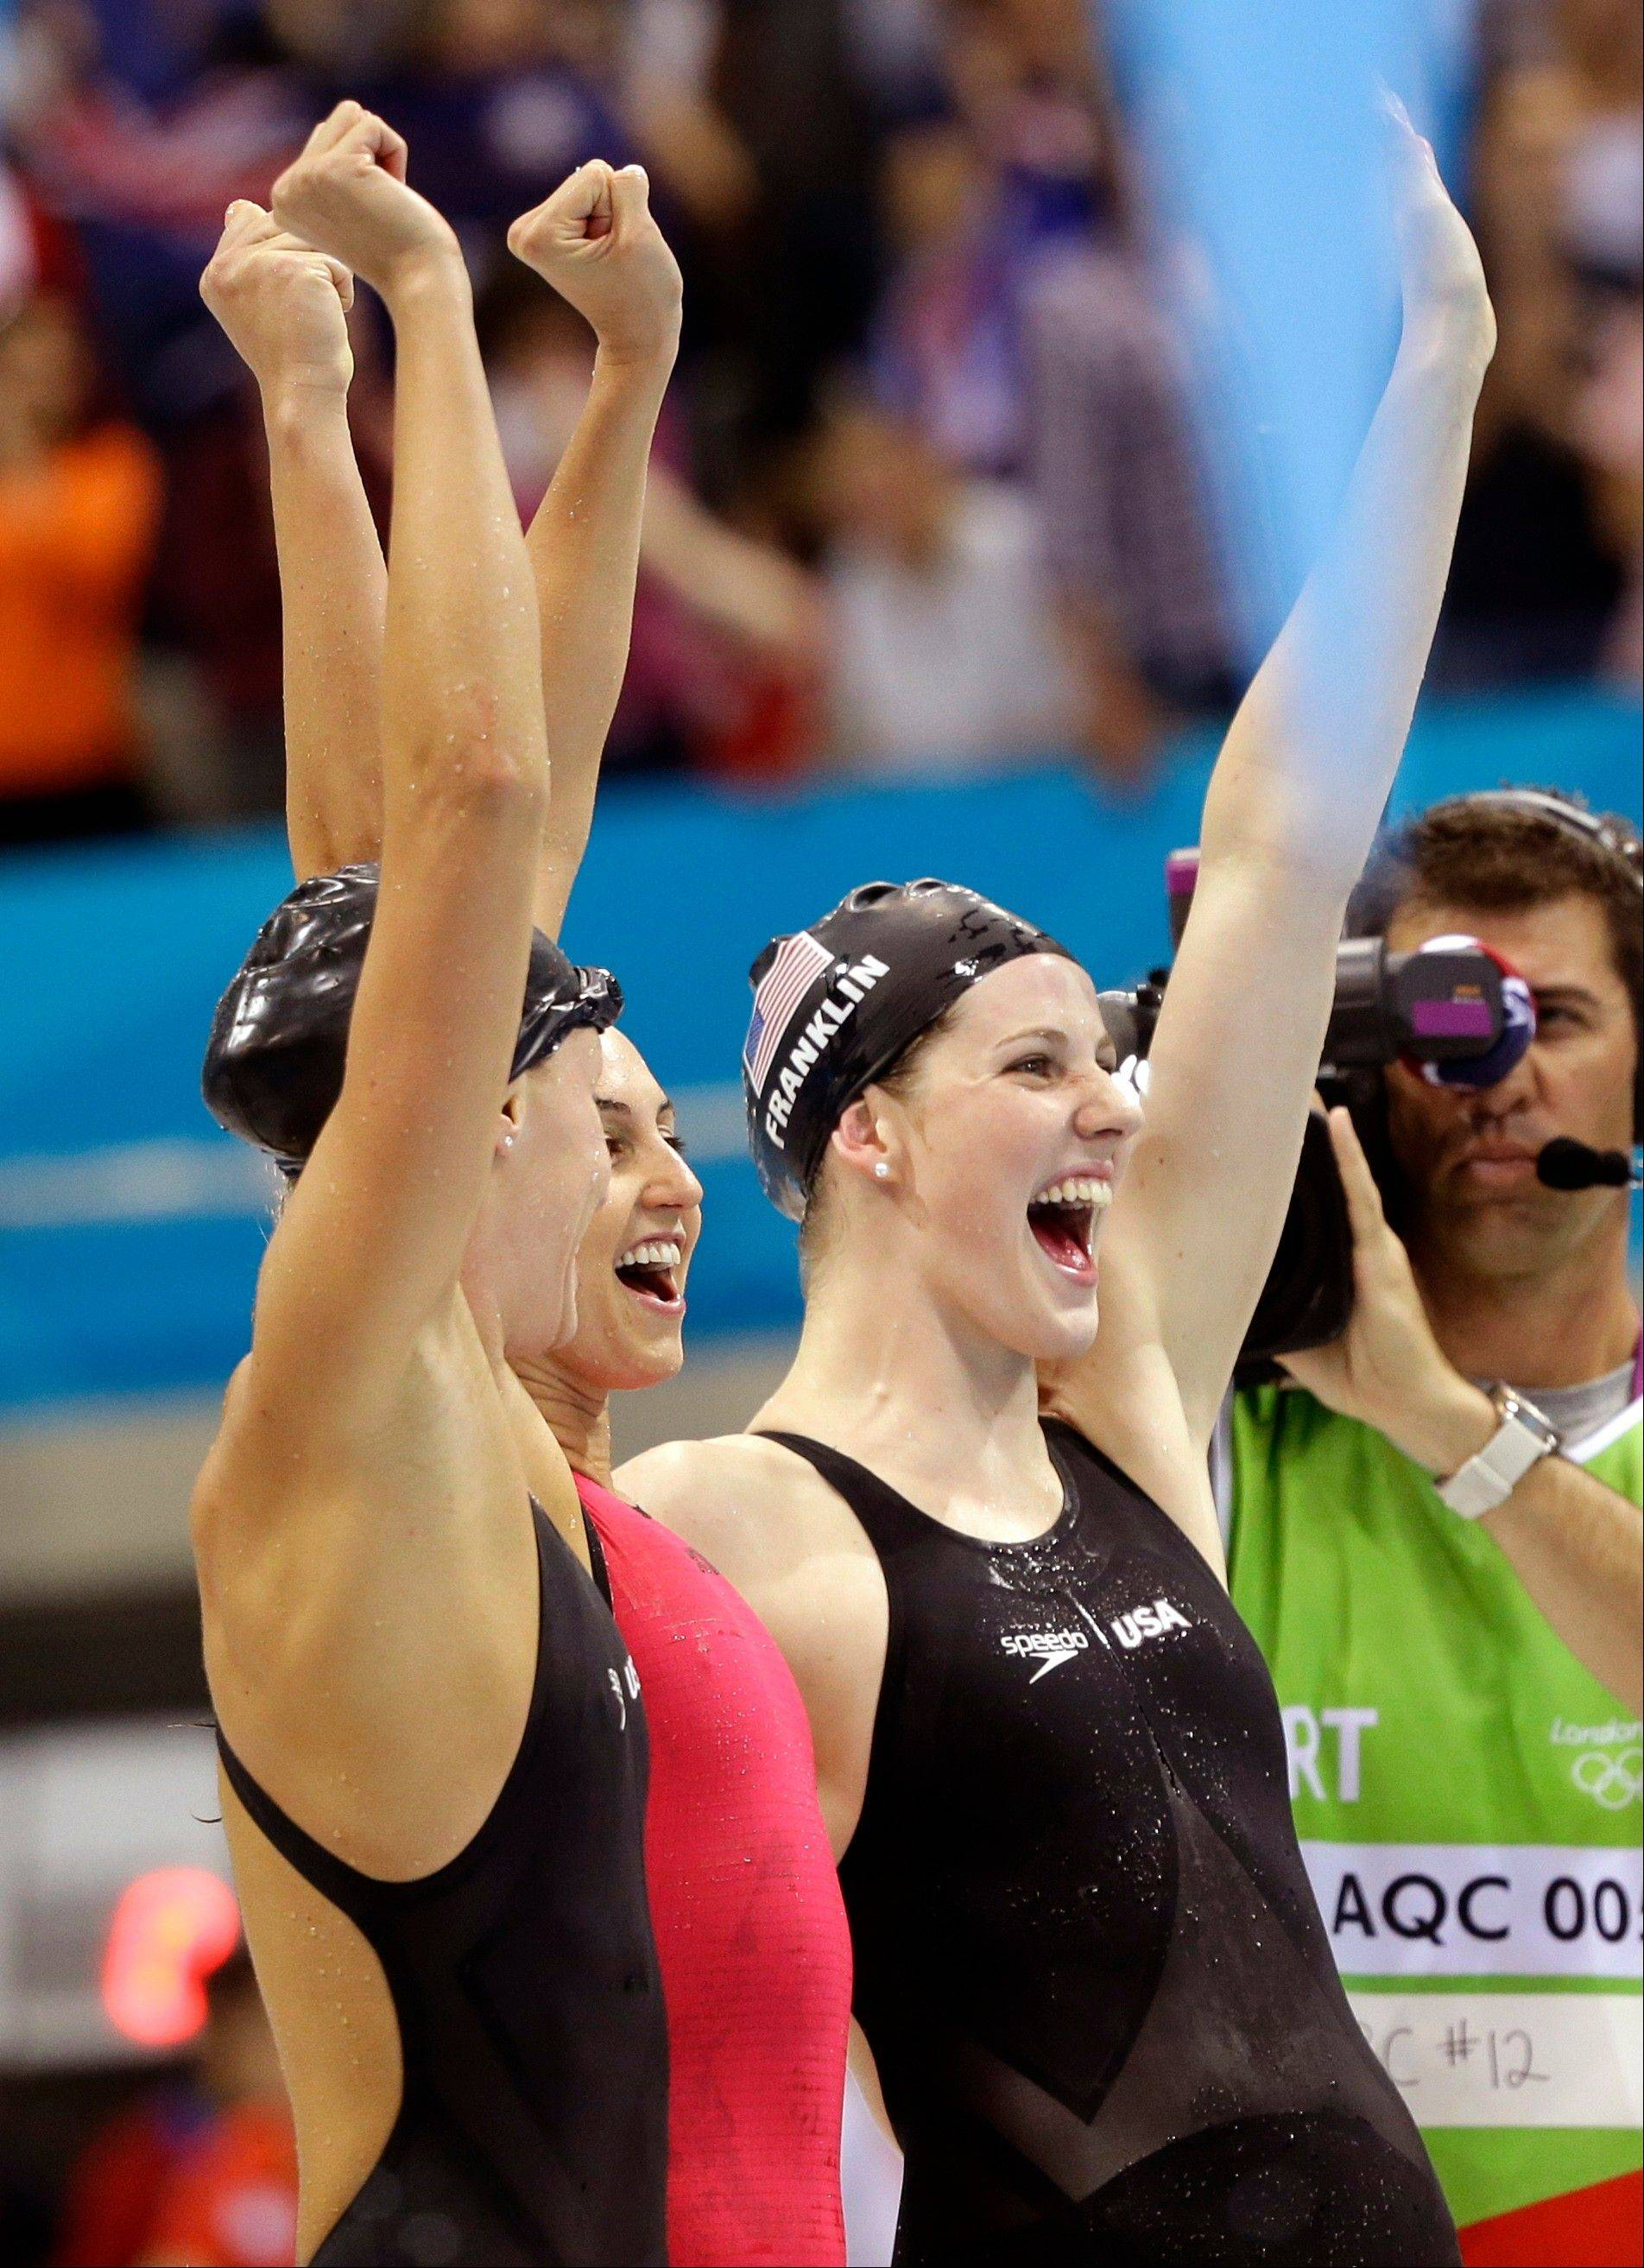 United States' women's 4 x 100-meter medley relay team Dana Vollmer, right, Rebecca Soni, center, and Missy Franklin, left, celebrate as their teammate finishes, winning the yeam a gold medal, at the Aquatics Centre in the Olympic Park during the 2012 Summer Olympics in London, Saturday, Aug. 4, 2012.